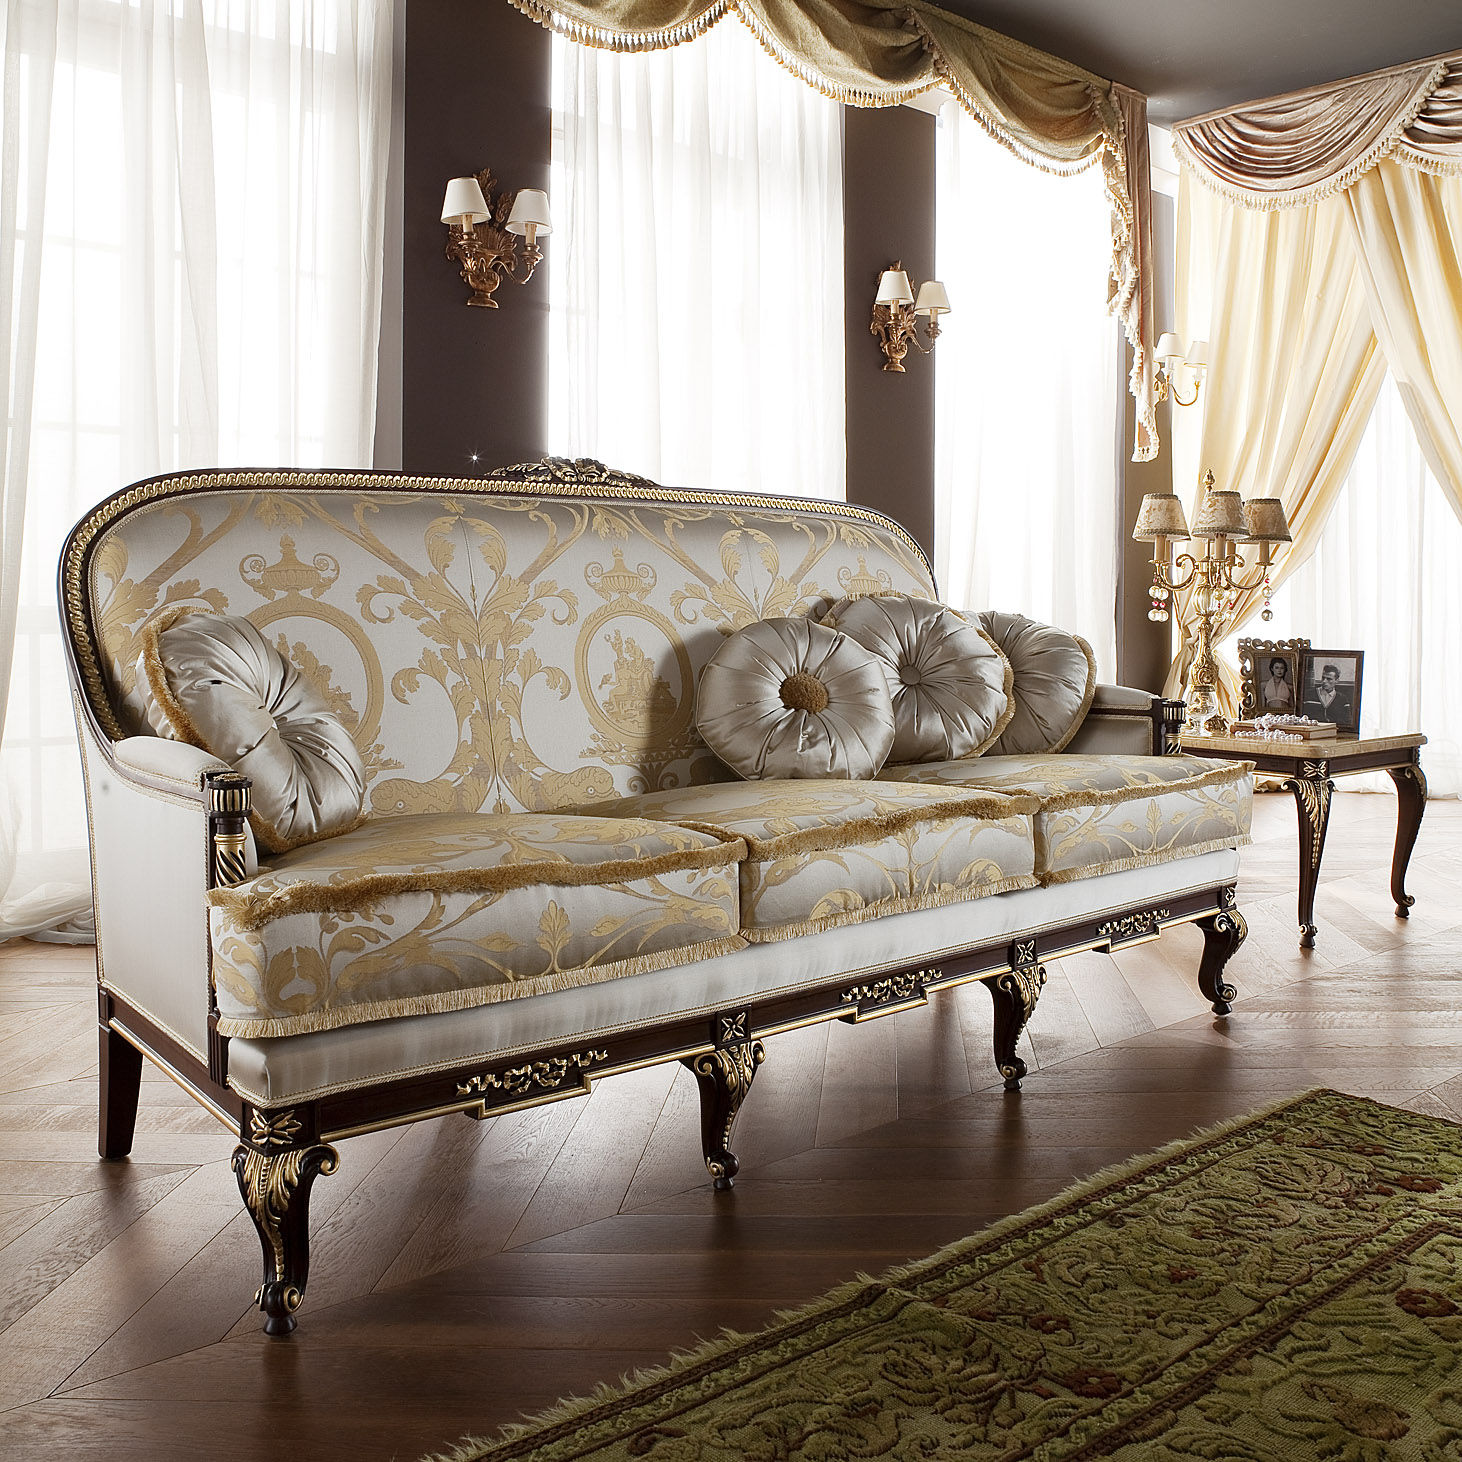 Classic design homes billing mt homesfeed for New classic furniture design